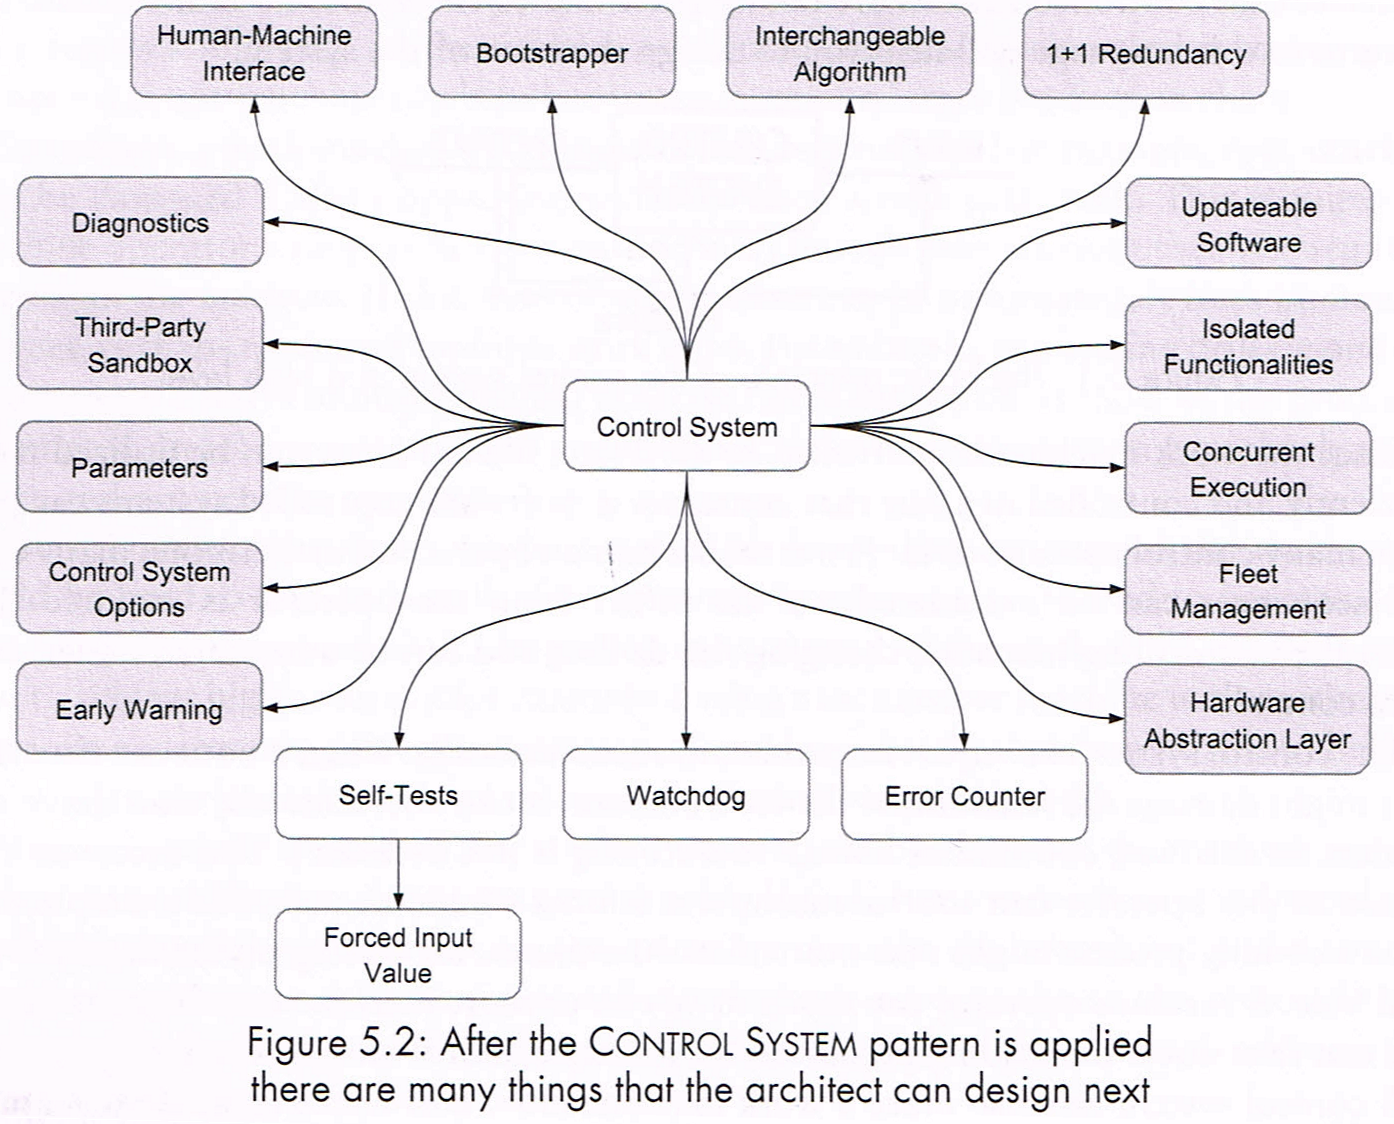 The top-level language of Control Systems patterns